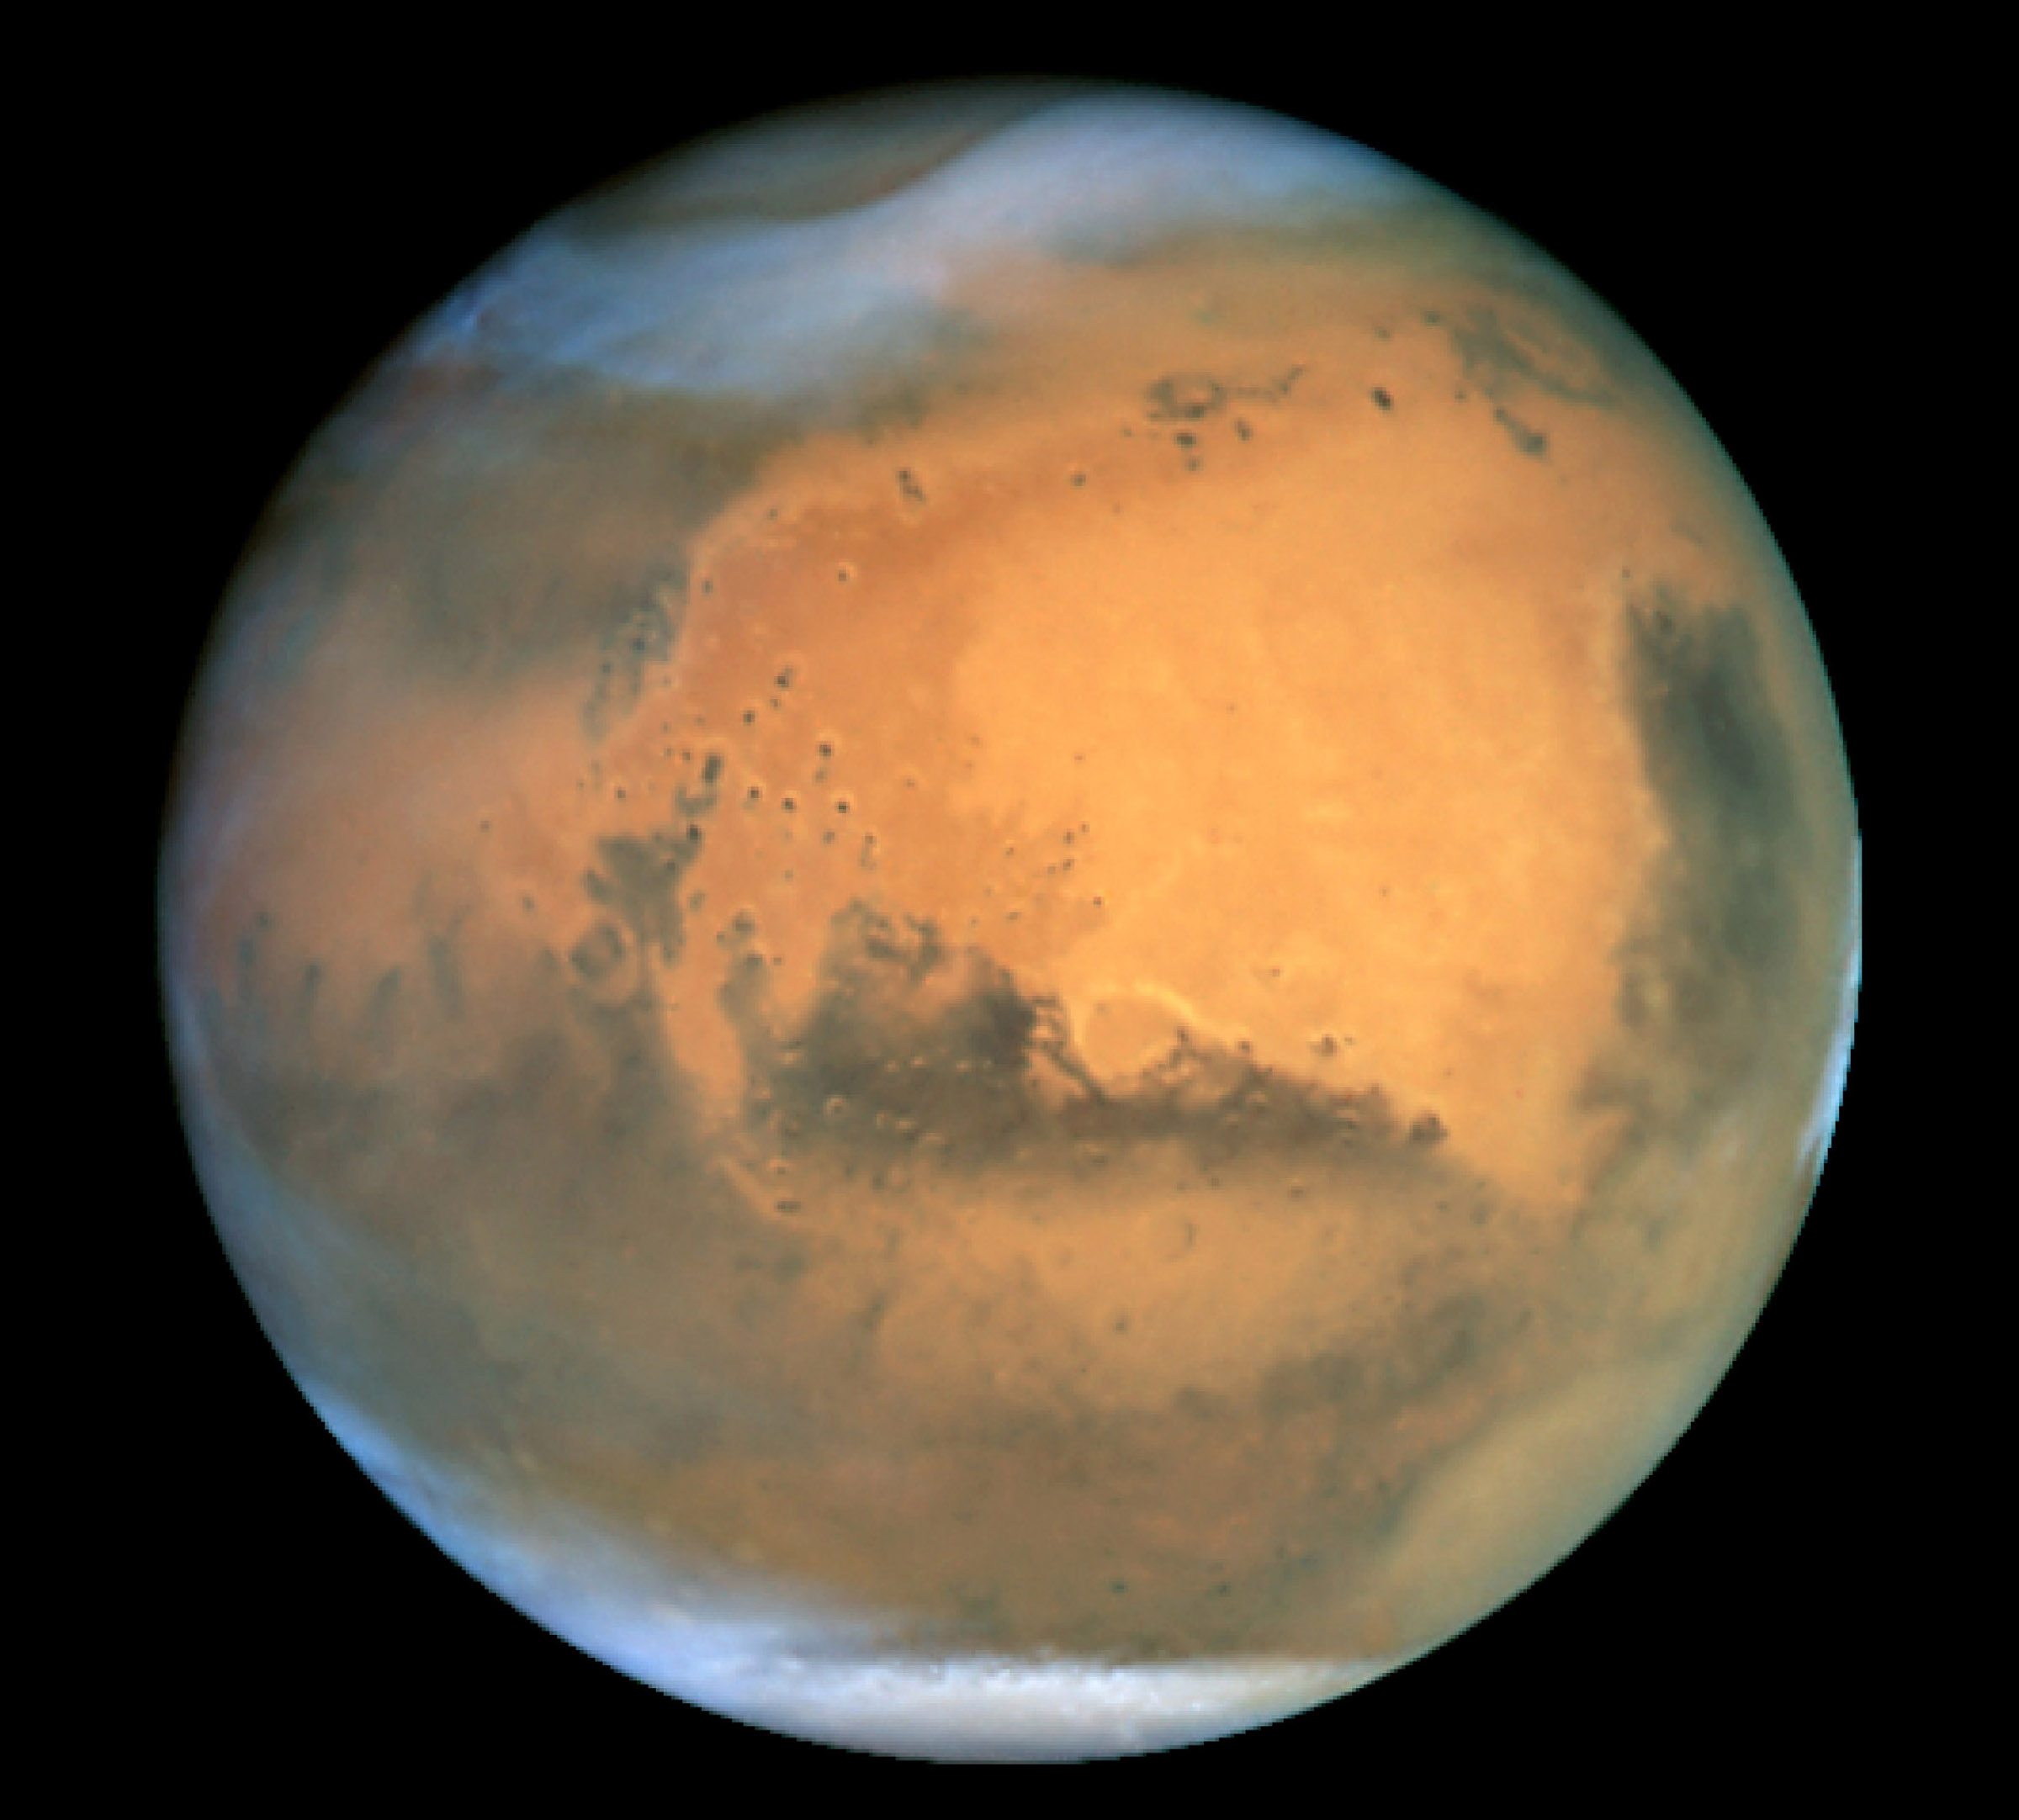 View of Mars from Hubble Space Telescope on June 26, 2001.